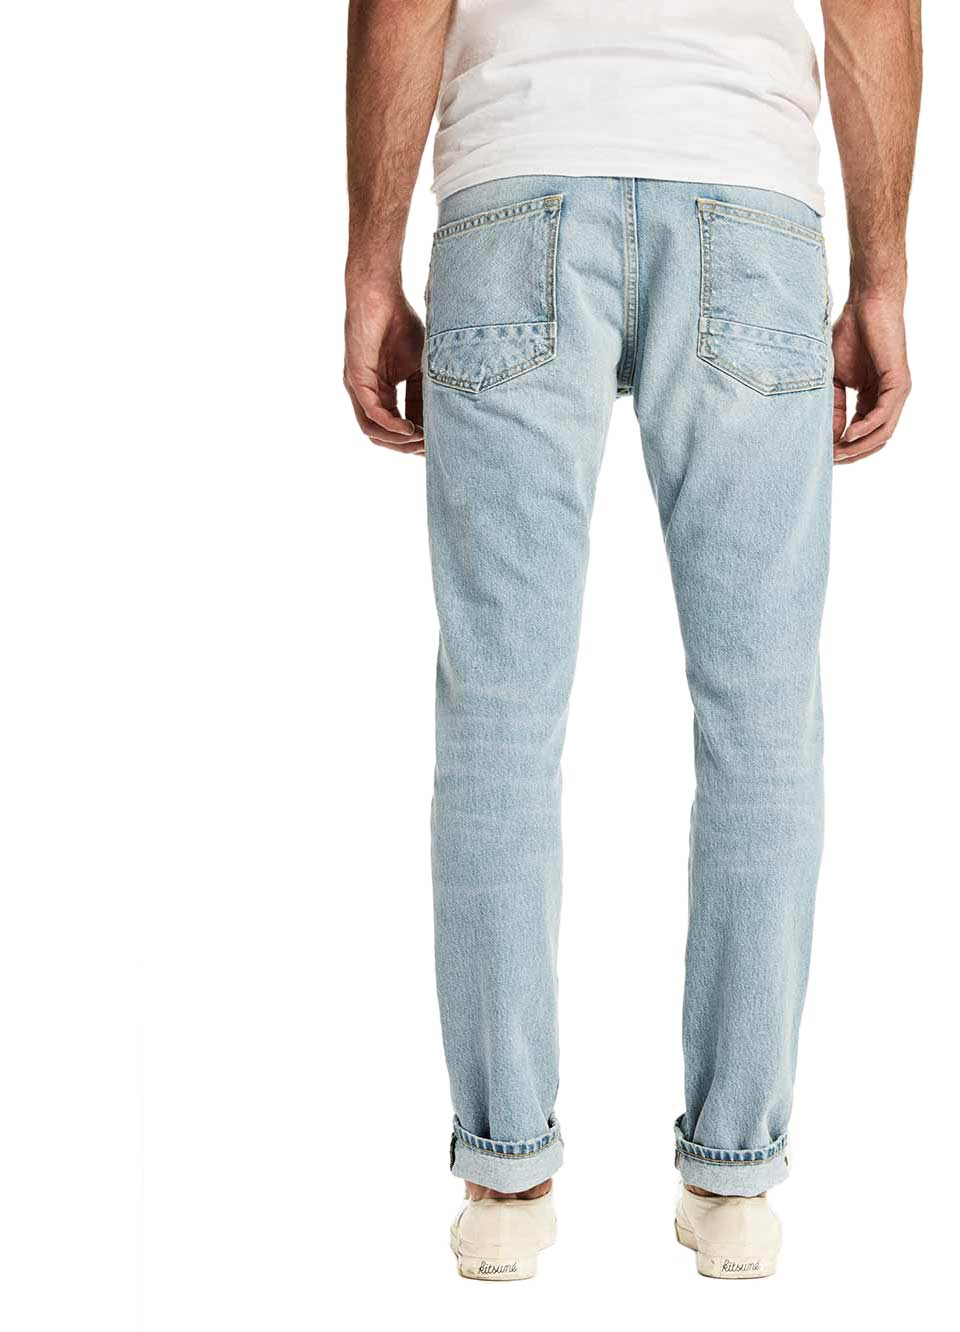 https://www.scotch-soda.com/global/en/men/jeans/slim-fit/regular-slim---ralston